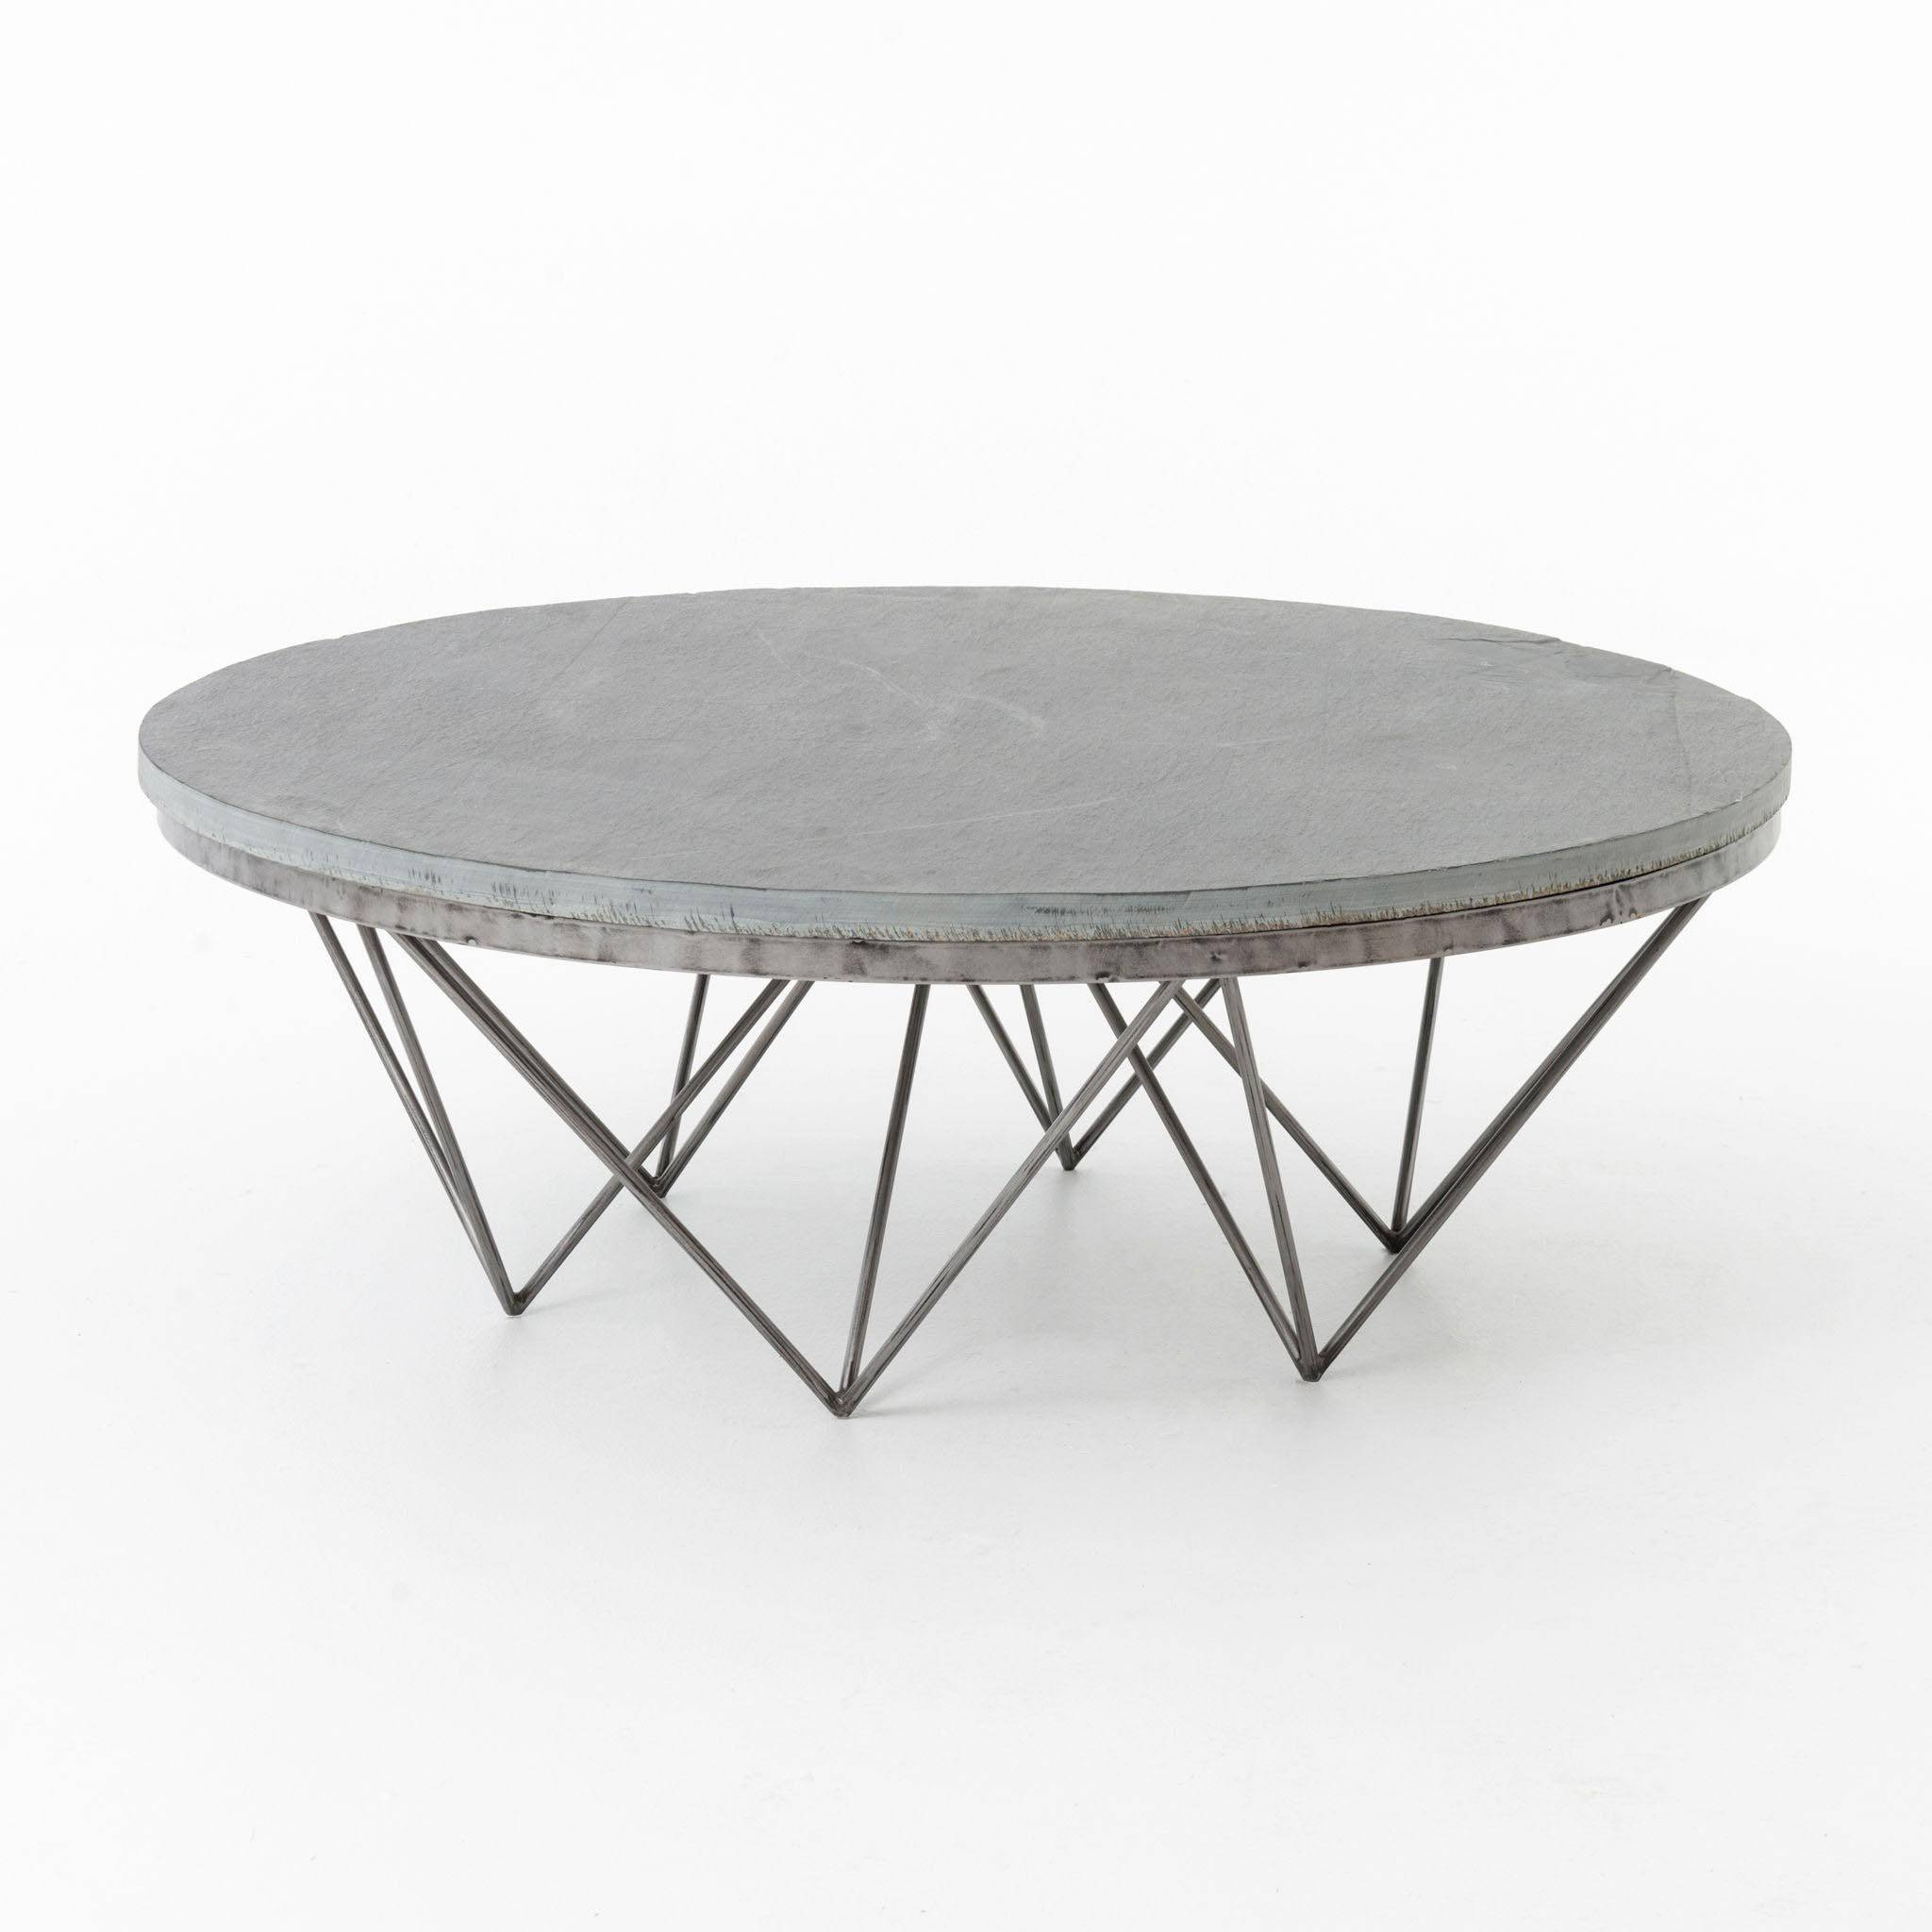 Semi Circle Coffee Tables | Coffee Table Design Ideas within Circle Coffee Tables (Image 24 of 30)